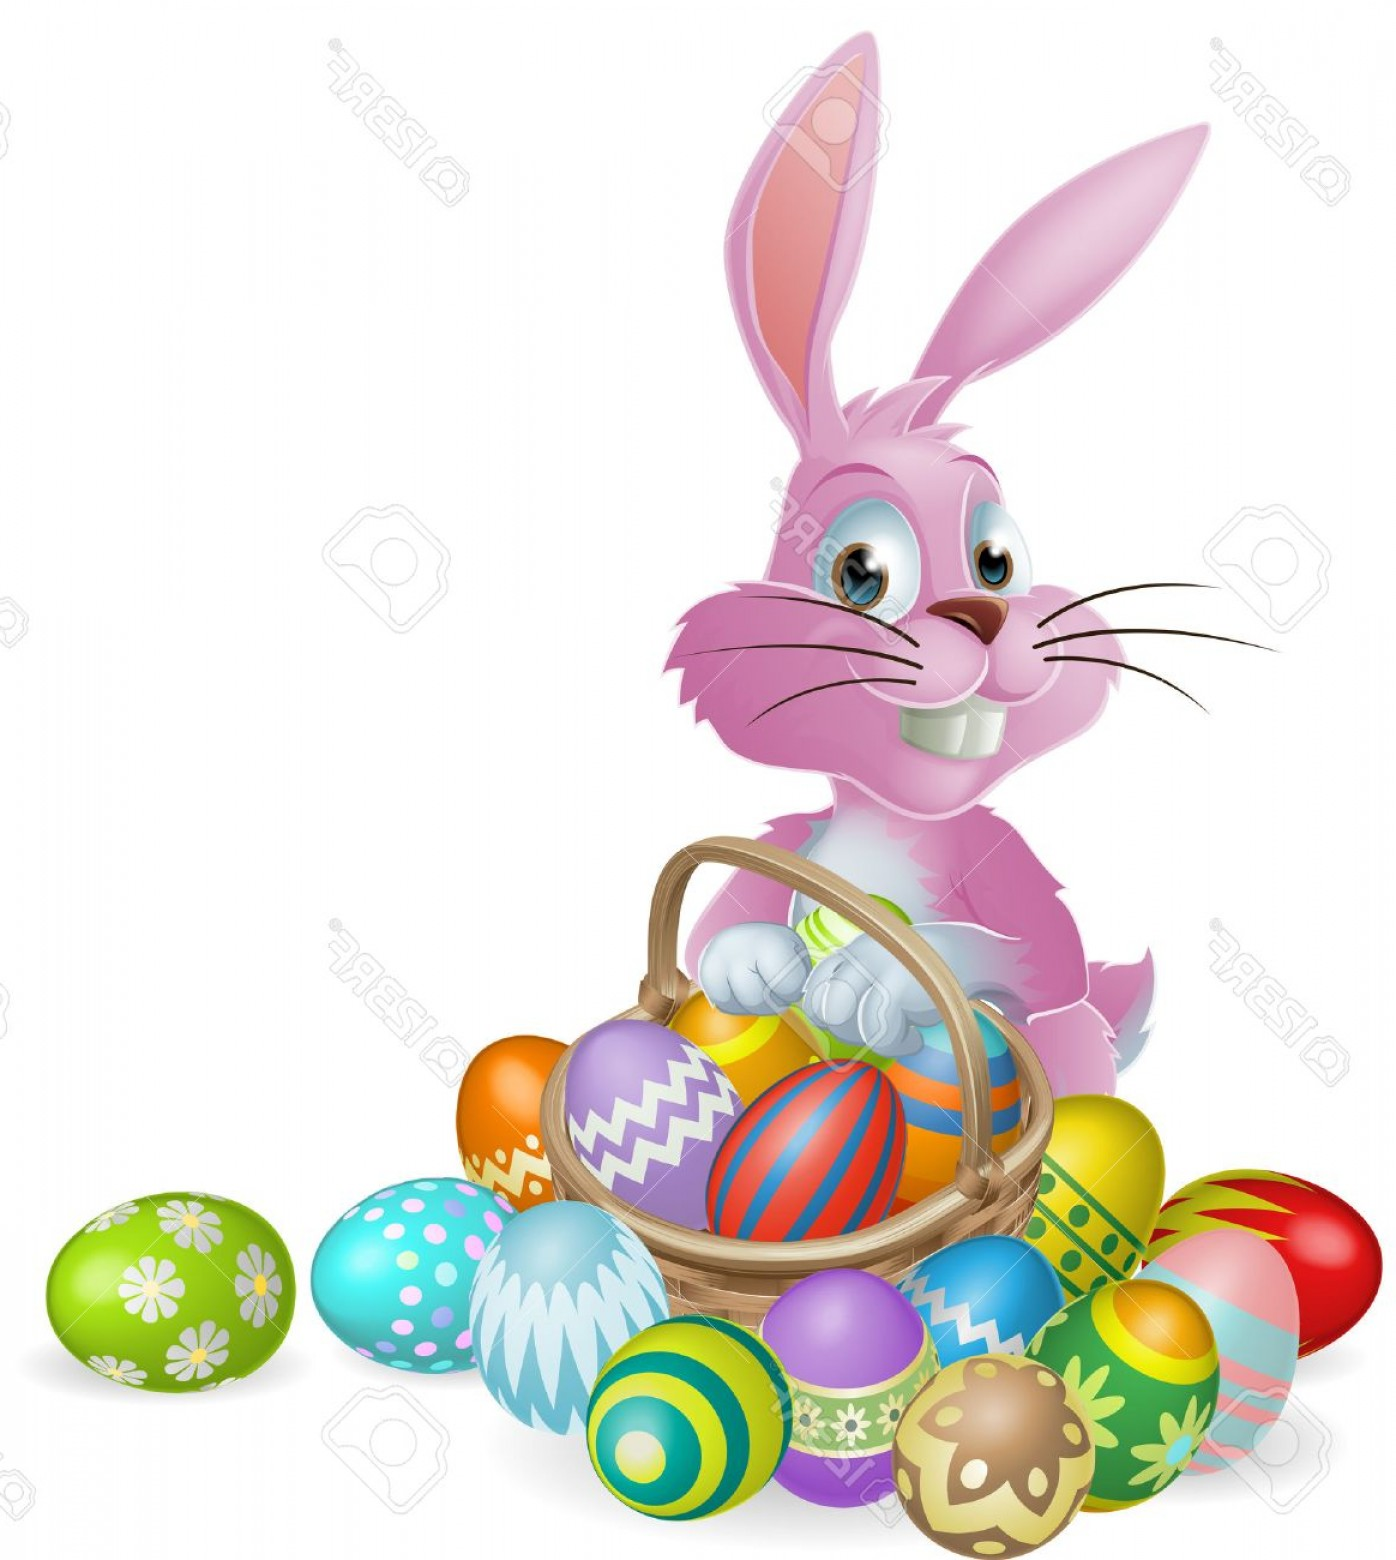 Vector Easter Egg Basket: Photopink Easter Bunny Rabbit With Easter Eggs Basket Full Of Chocolate Decorated Easter Eggs